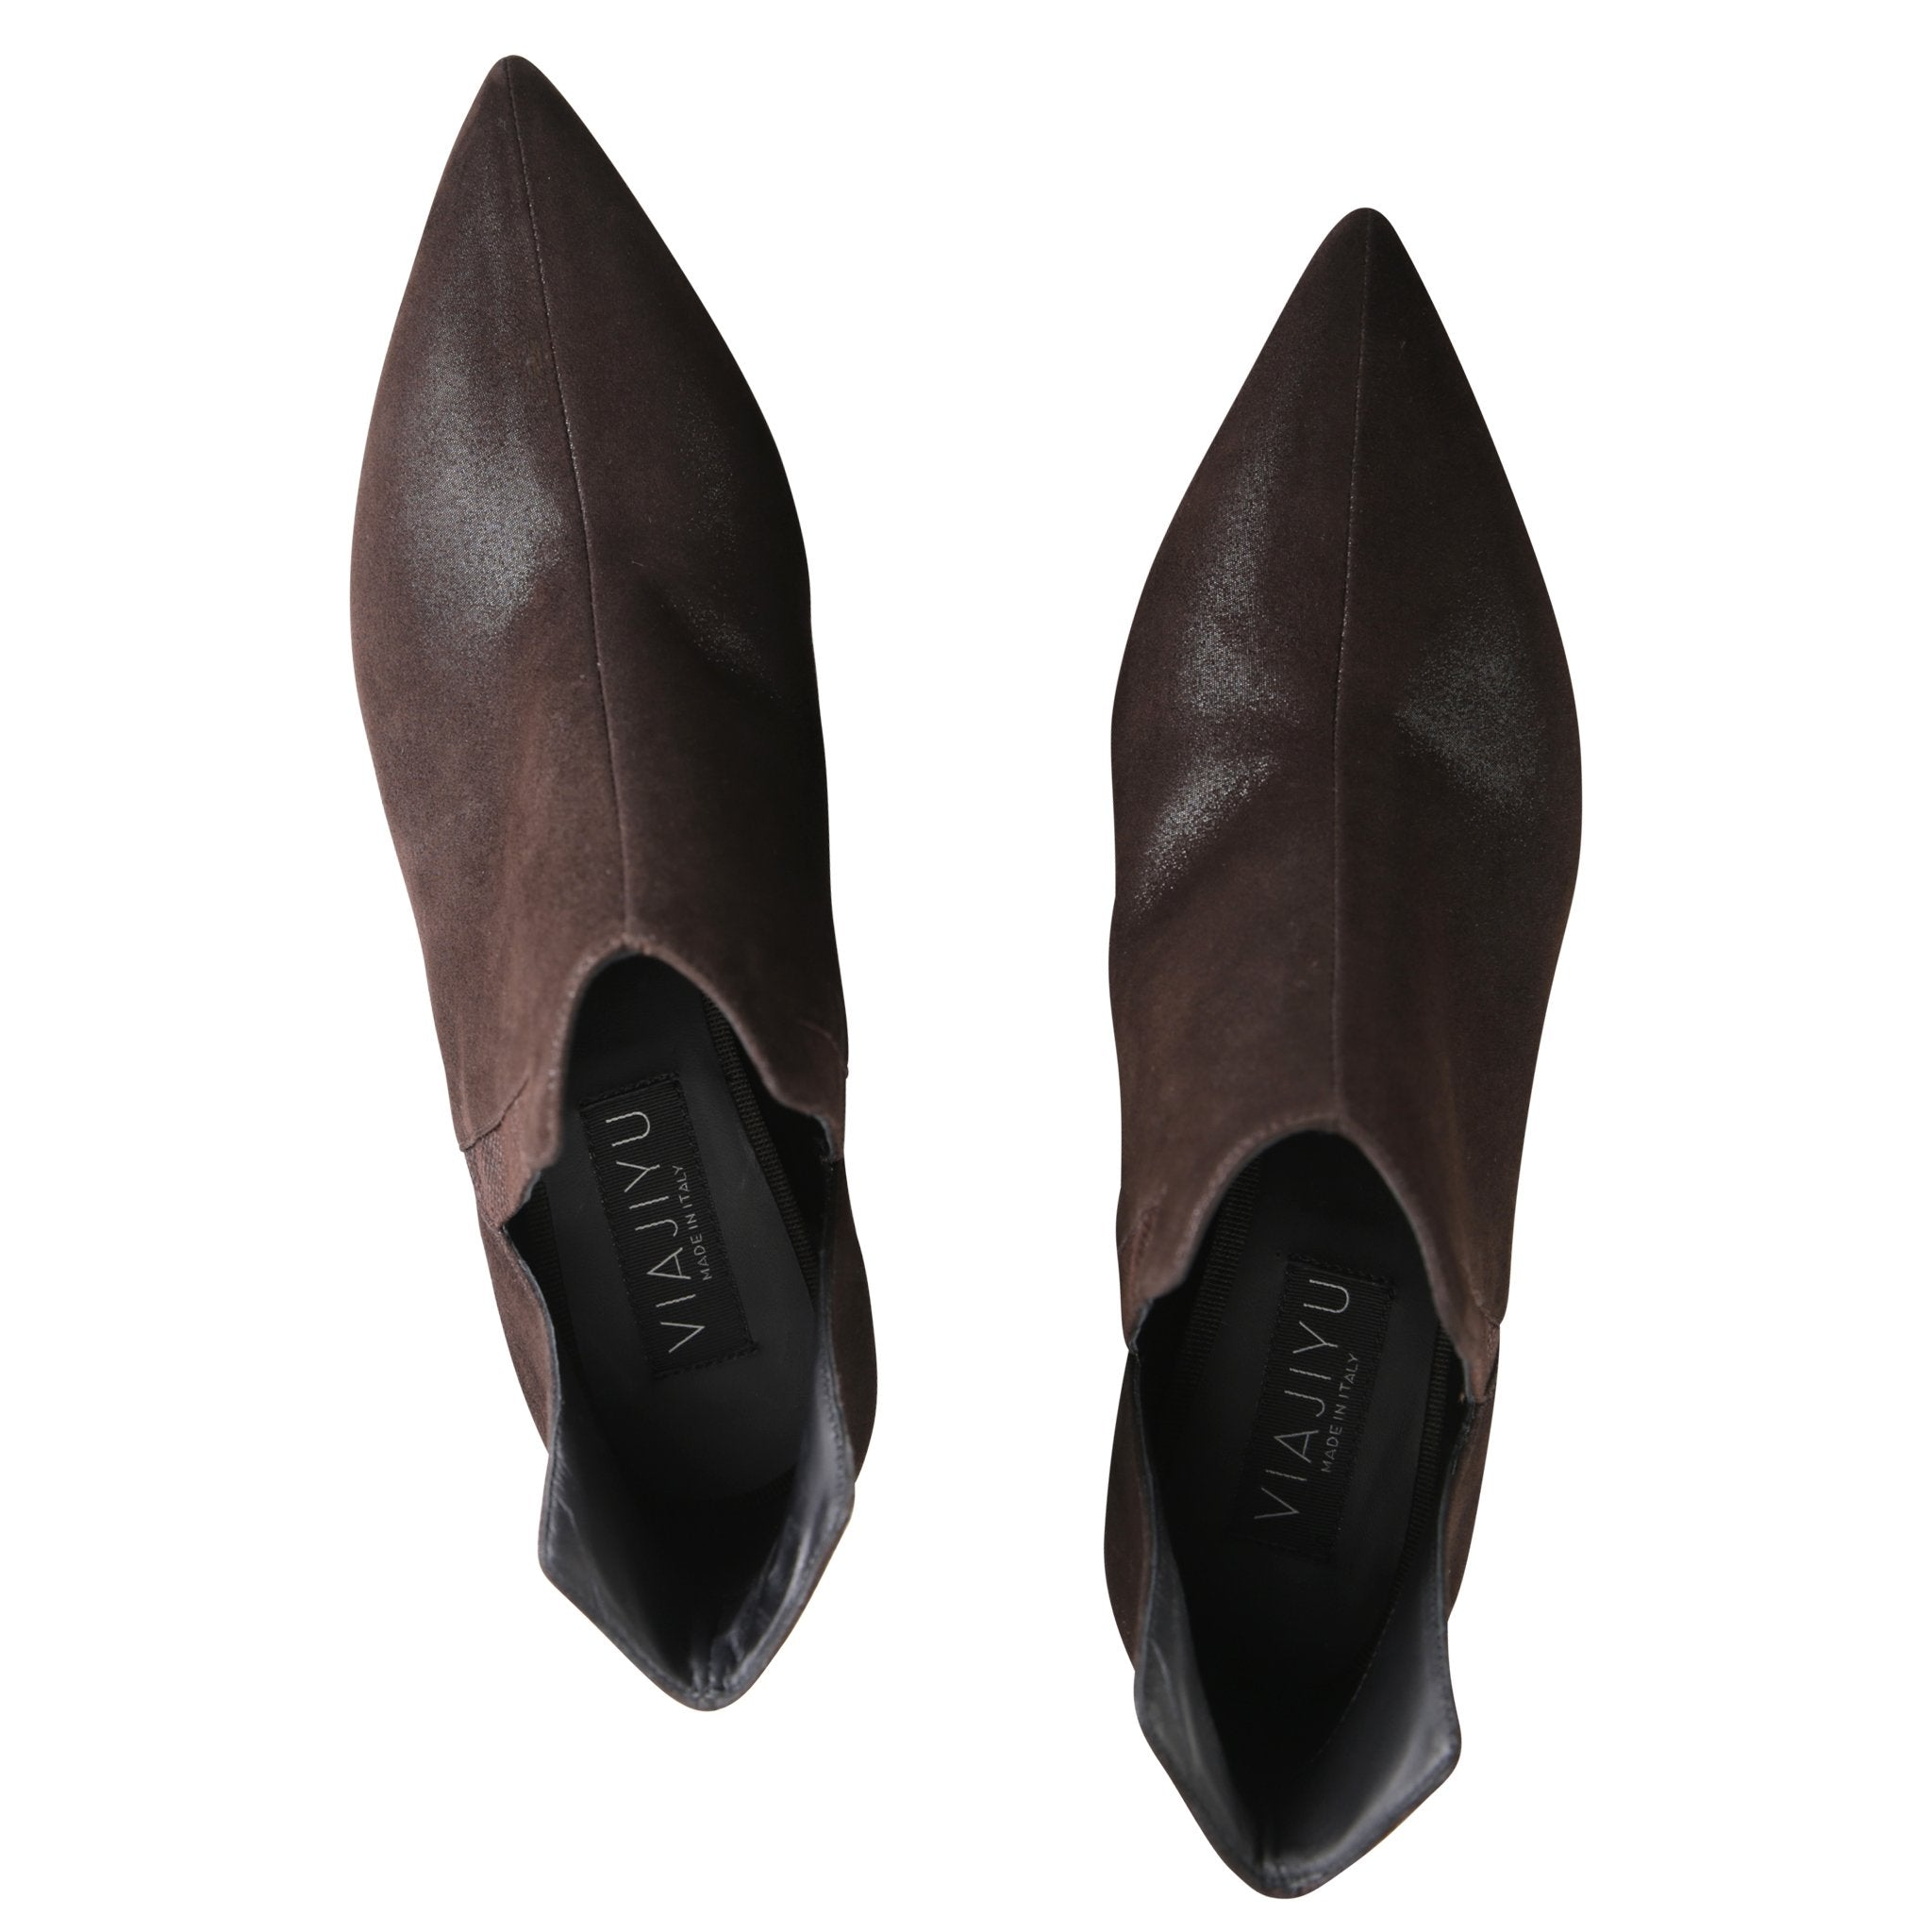 SYRENE - Hydra + Karung Espresso, VIAJIYU - Women's Hand Made Sustainable Luxury Shoes. Made in Italy. Made to Order.